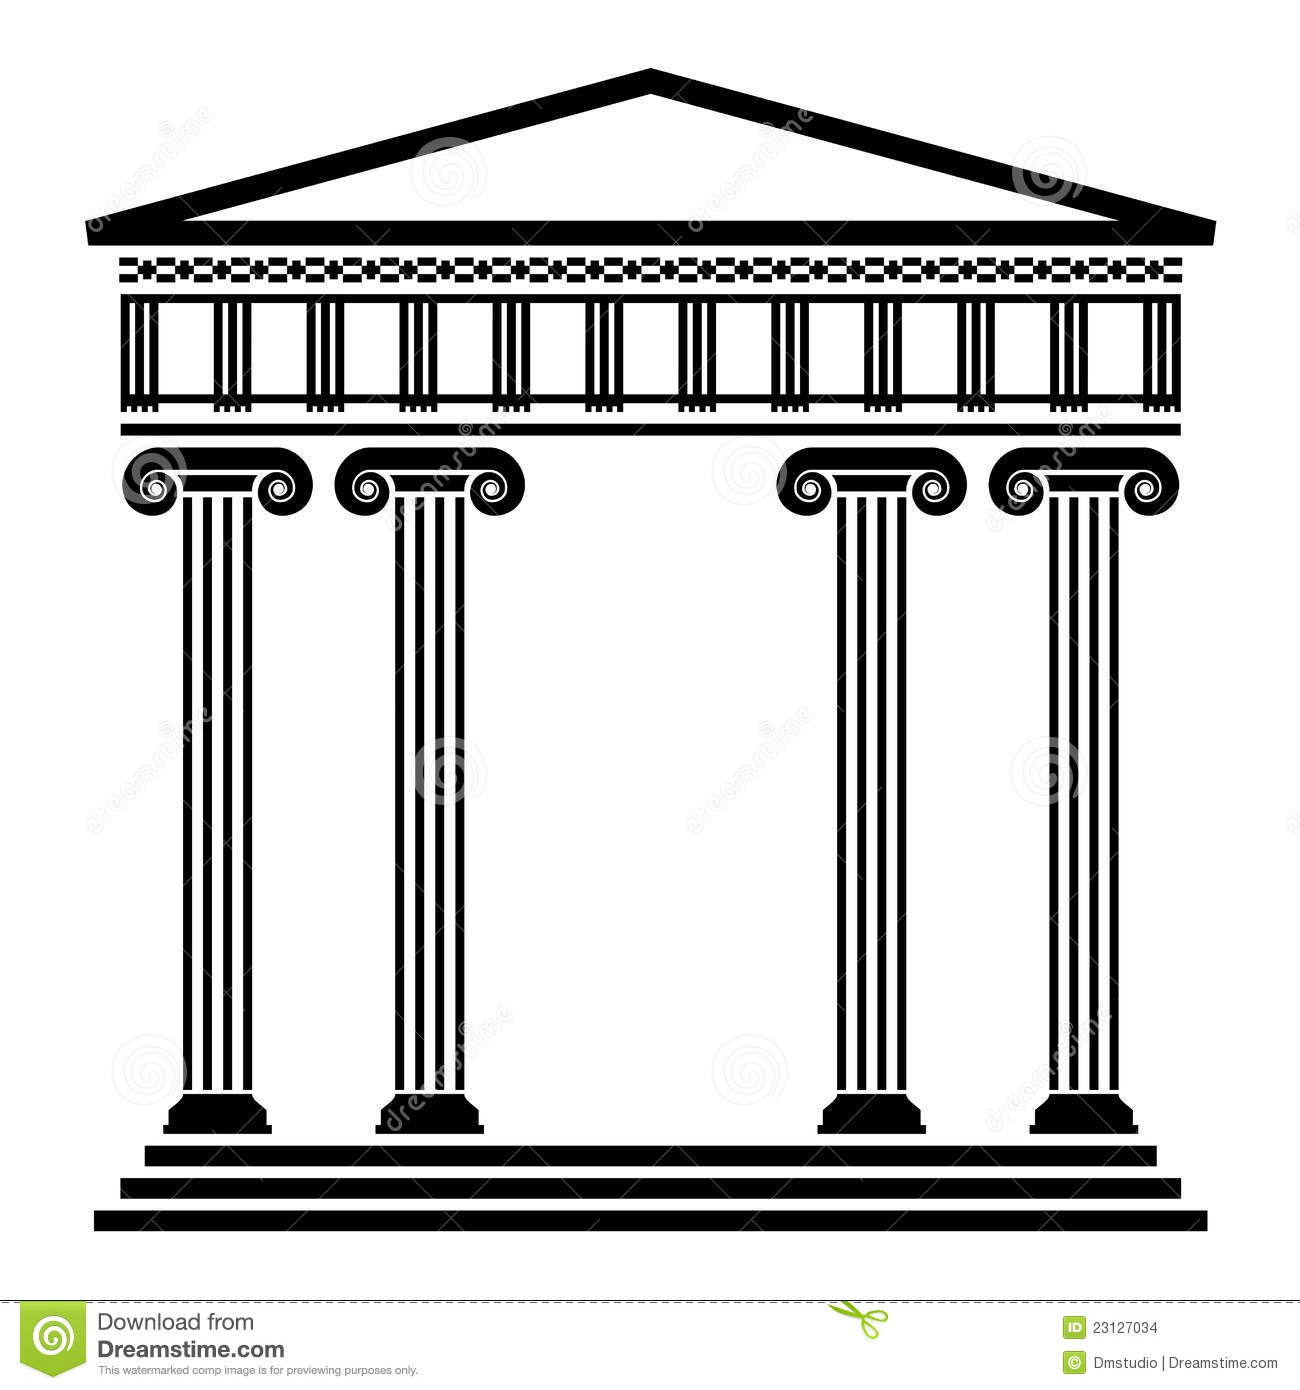 Greek building clipart vector royalty free library Greek architecture clipart - ClipartFest vector royalty free library